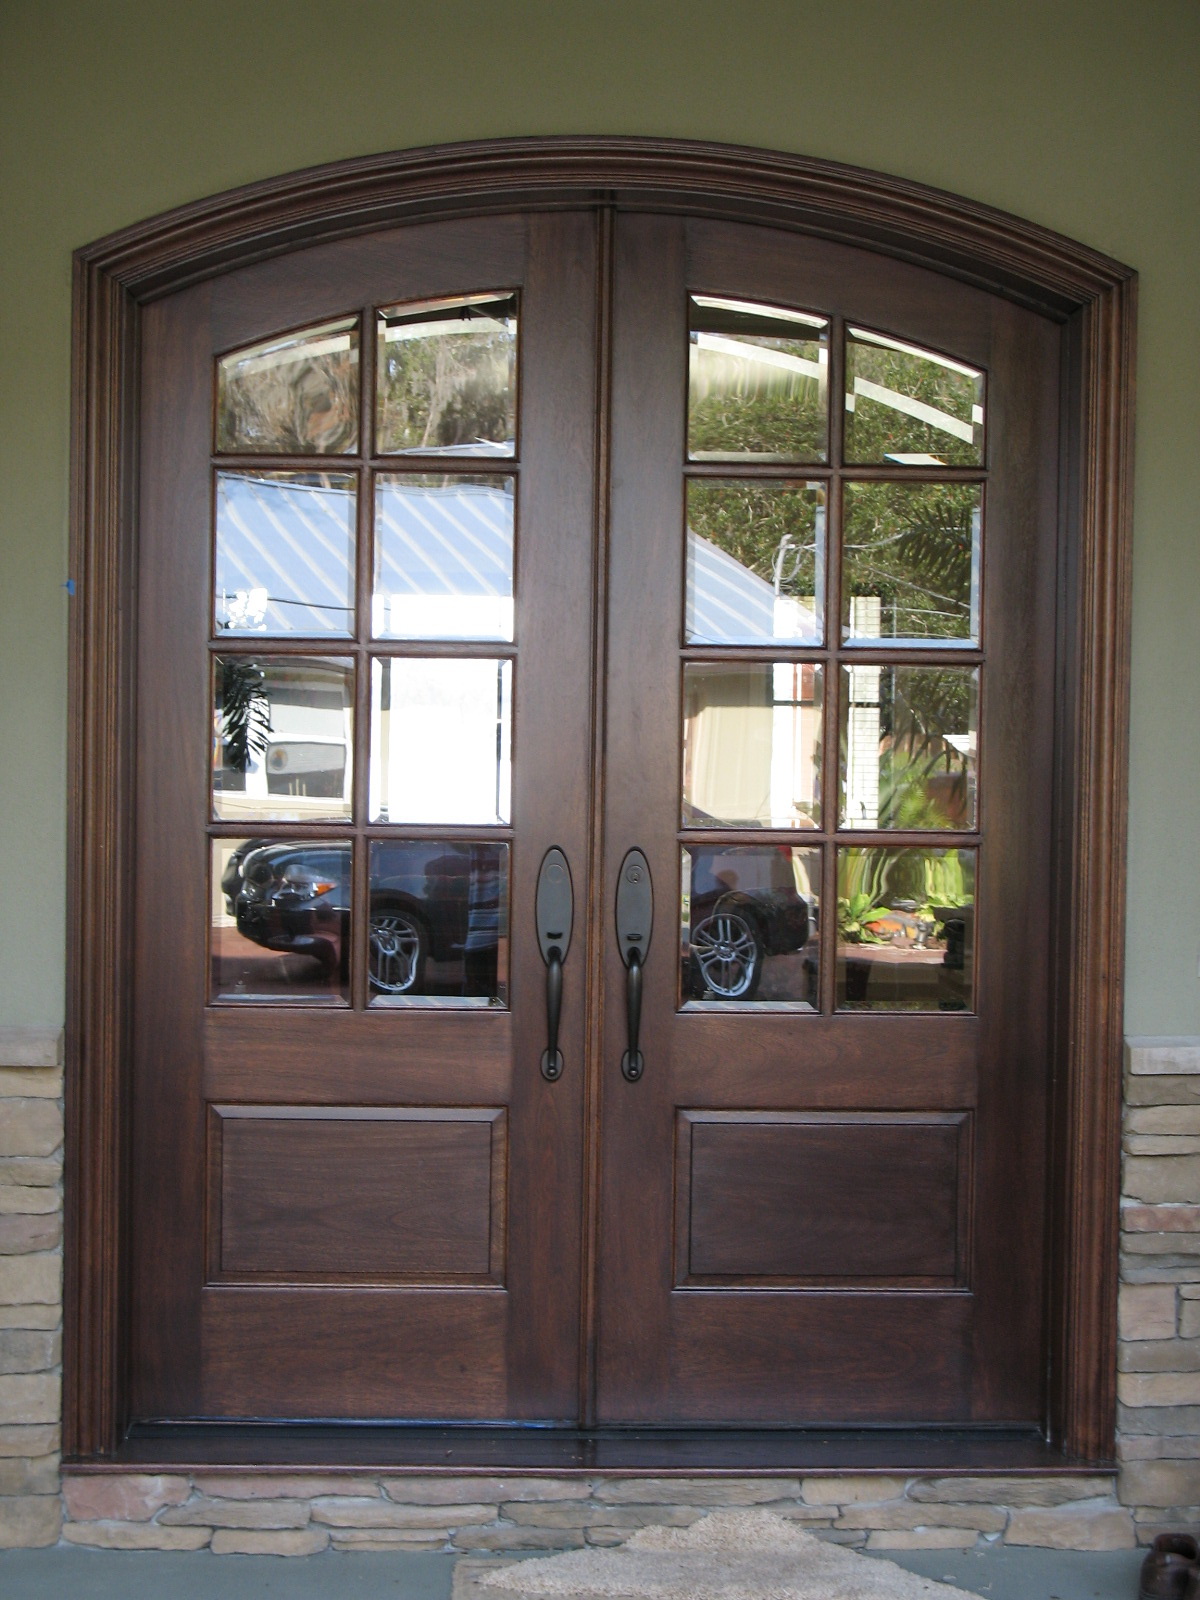 1000 images about front doors on pinterest for Oversized exterior doors for sale